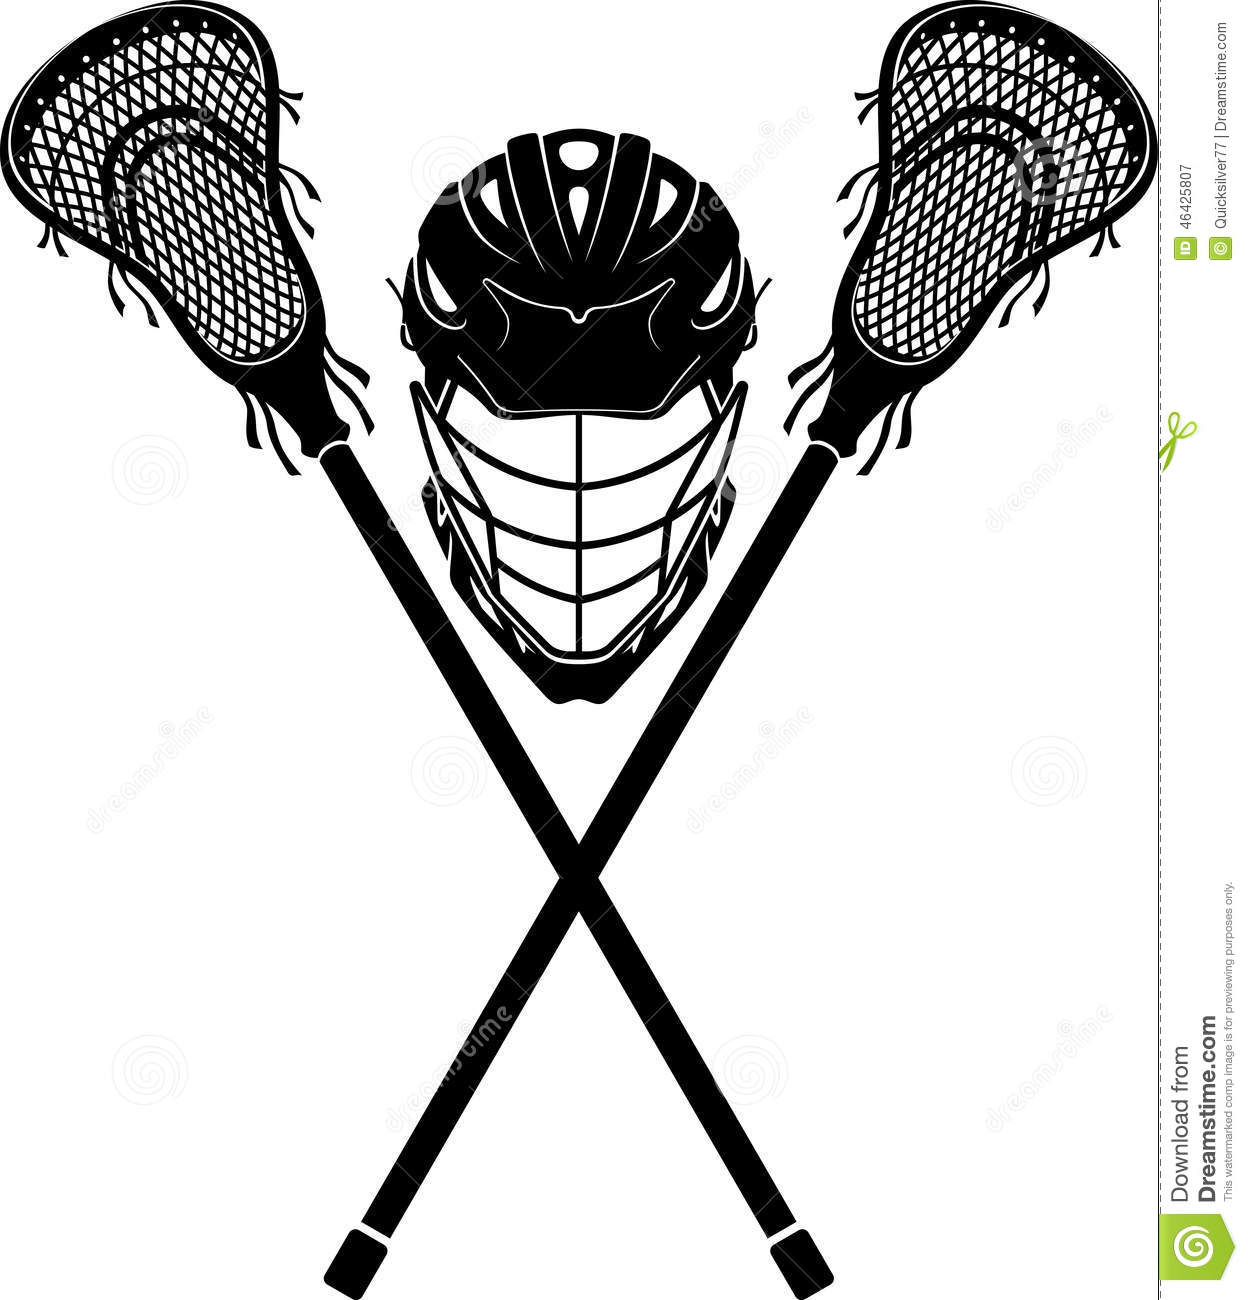 Download best on . Free lacrosse images clipart